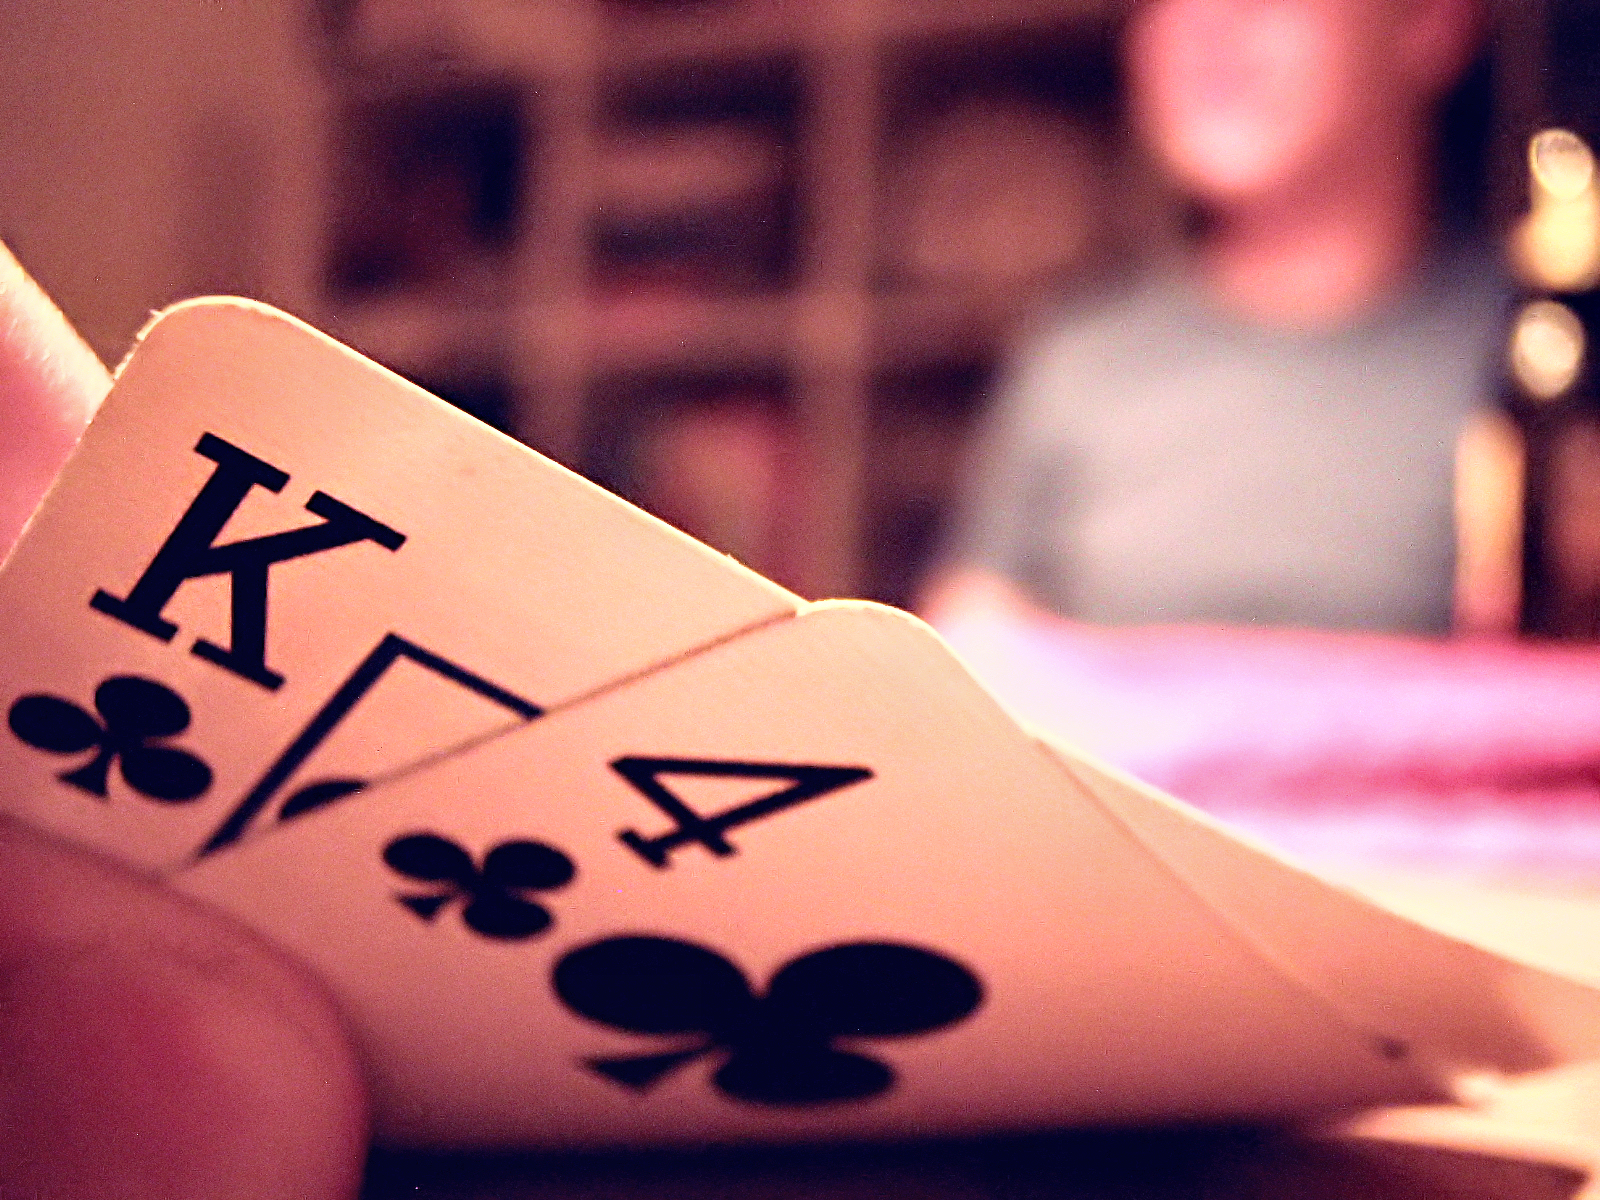 File:Texas Hold 'em Hole Cards.jpg - Wikipedia, the free encyclopedia